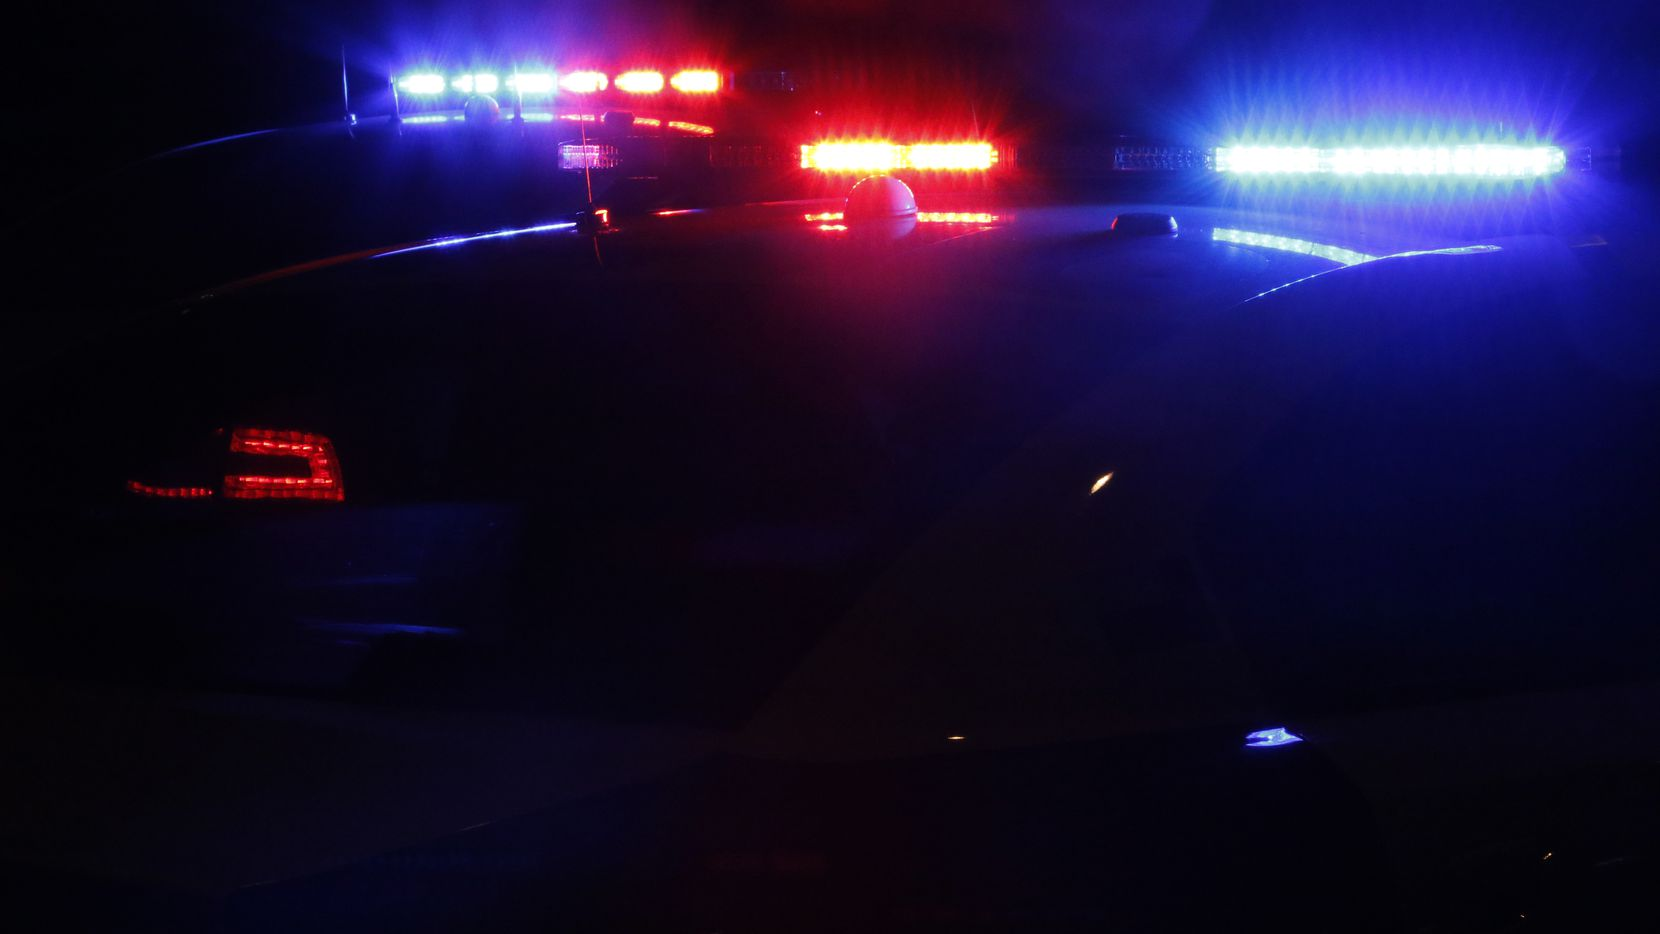 Police lights are seen in this file photo.